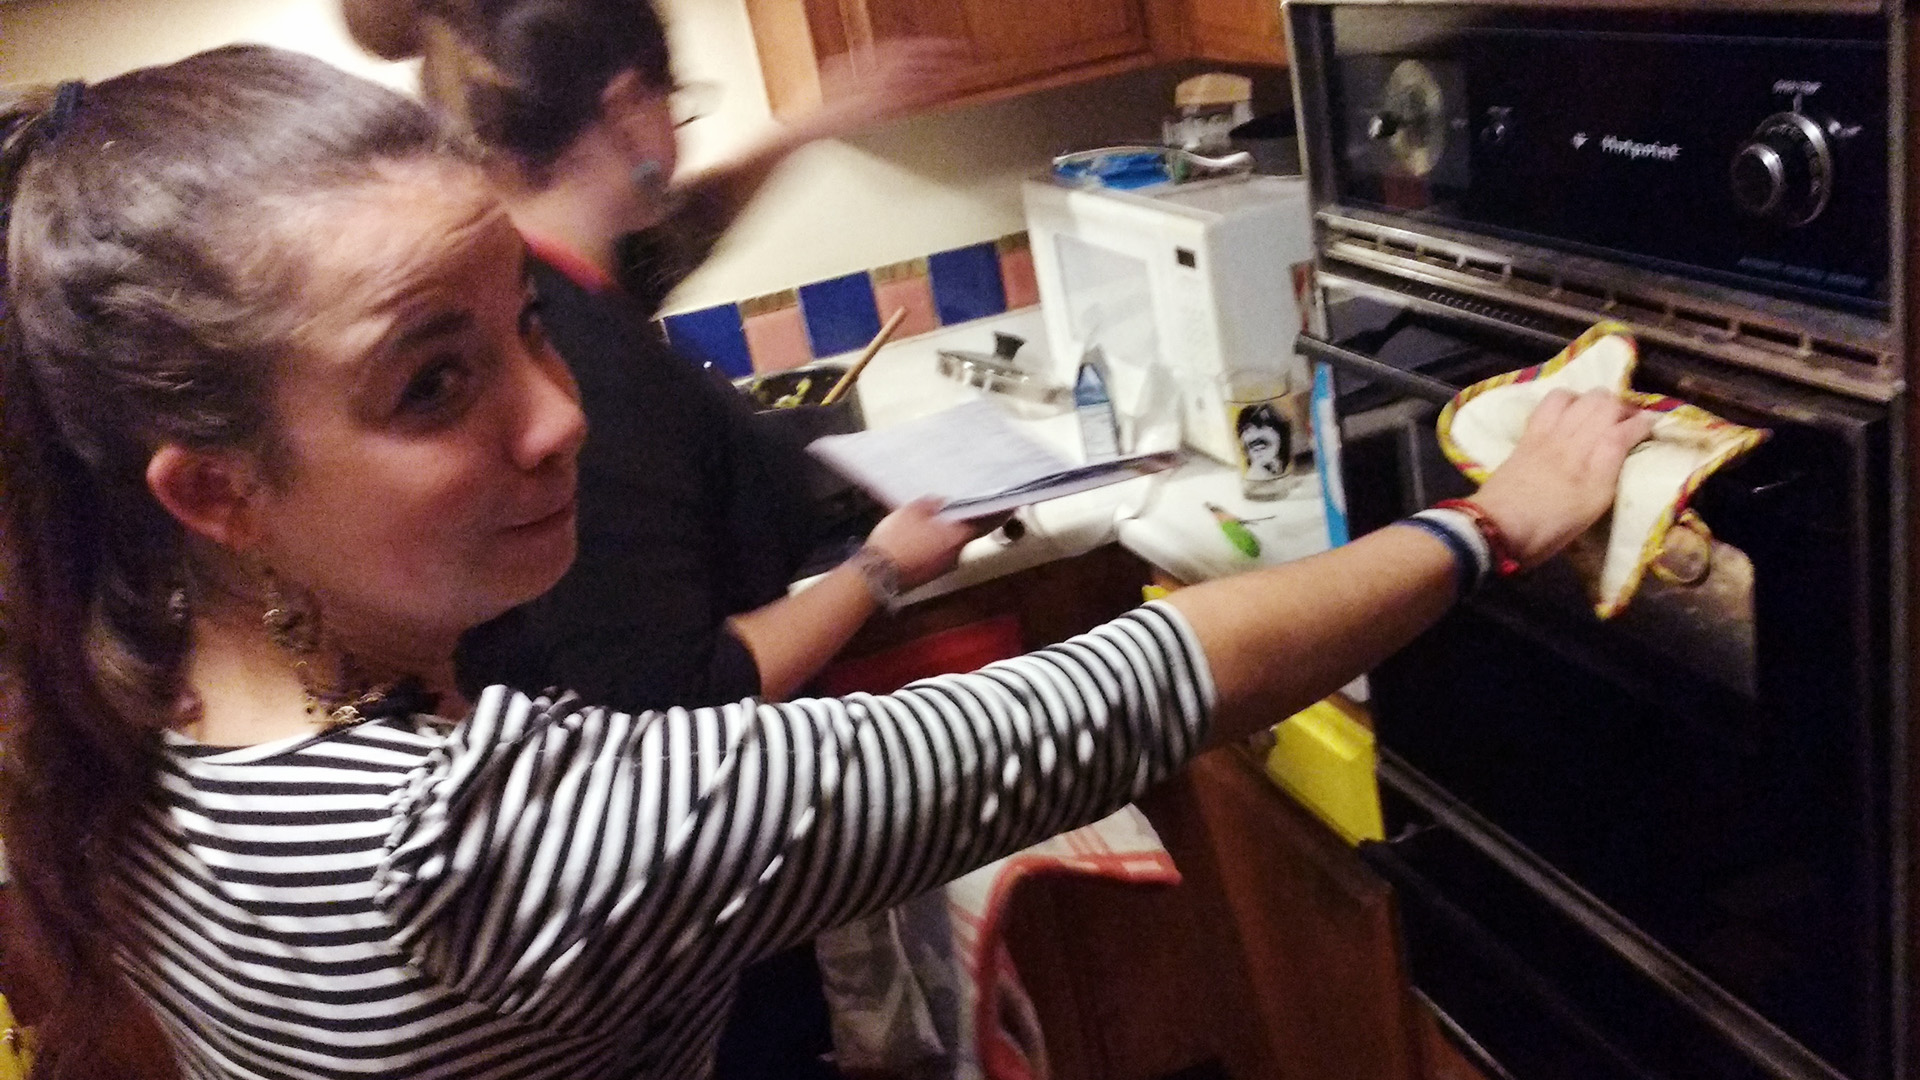 Terézia with her hand on the oven door about to open it, but with a look of apprehension on her face